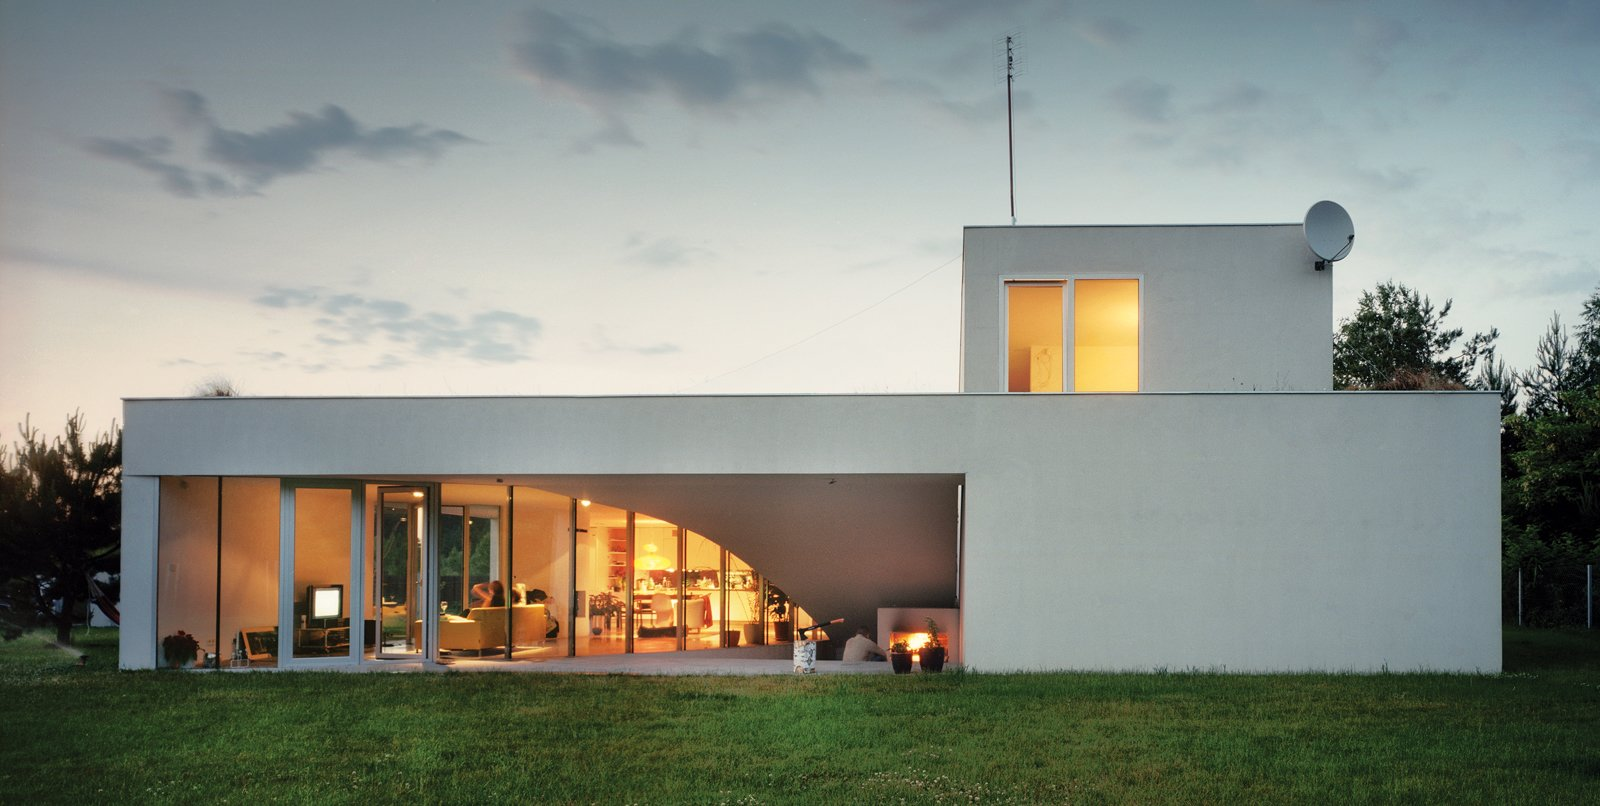 """Though the three-bedroom house is two stories, both floors offer """"front"""" lawns on which to hang out, all accessible through sliding glass doors.  Photo 3 of 3 in Modernist Rural Getaway in Poland"""